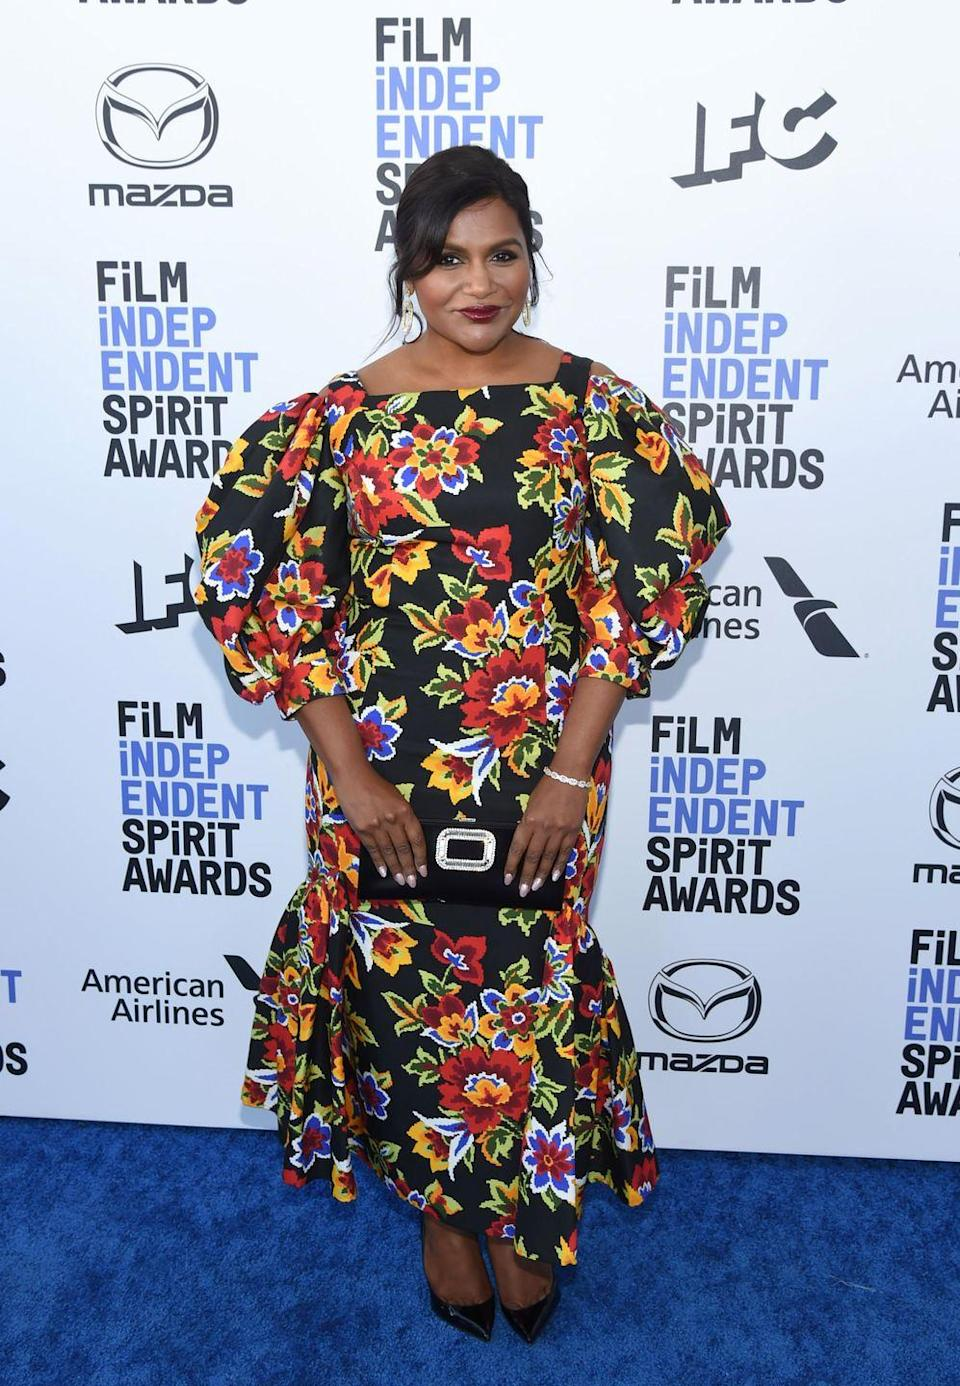 <p>Before she became known as an actress and screenwriter, Kaling graduated in 2001 from Dartmouth College with a degree in Playwriting.</p>